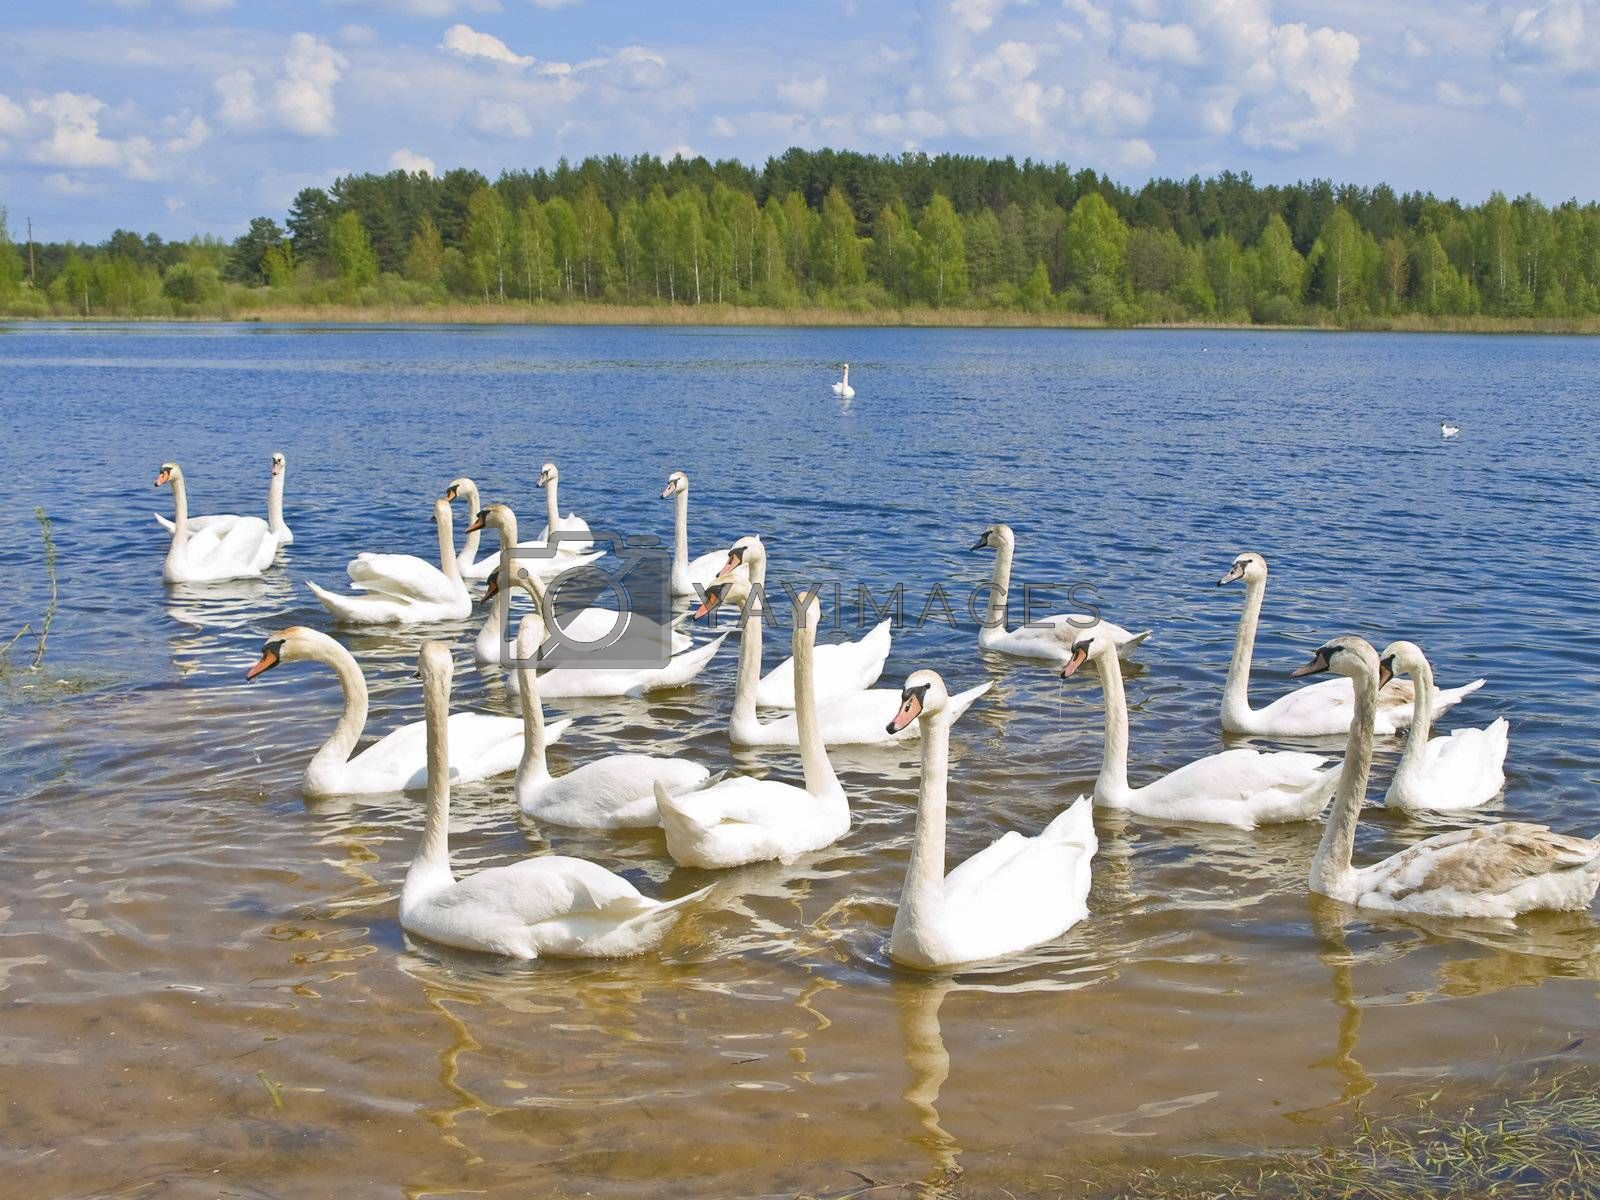 Many white swans swimming at the blue lake in wild nature